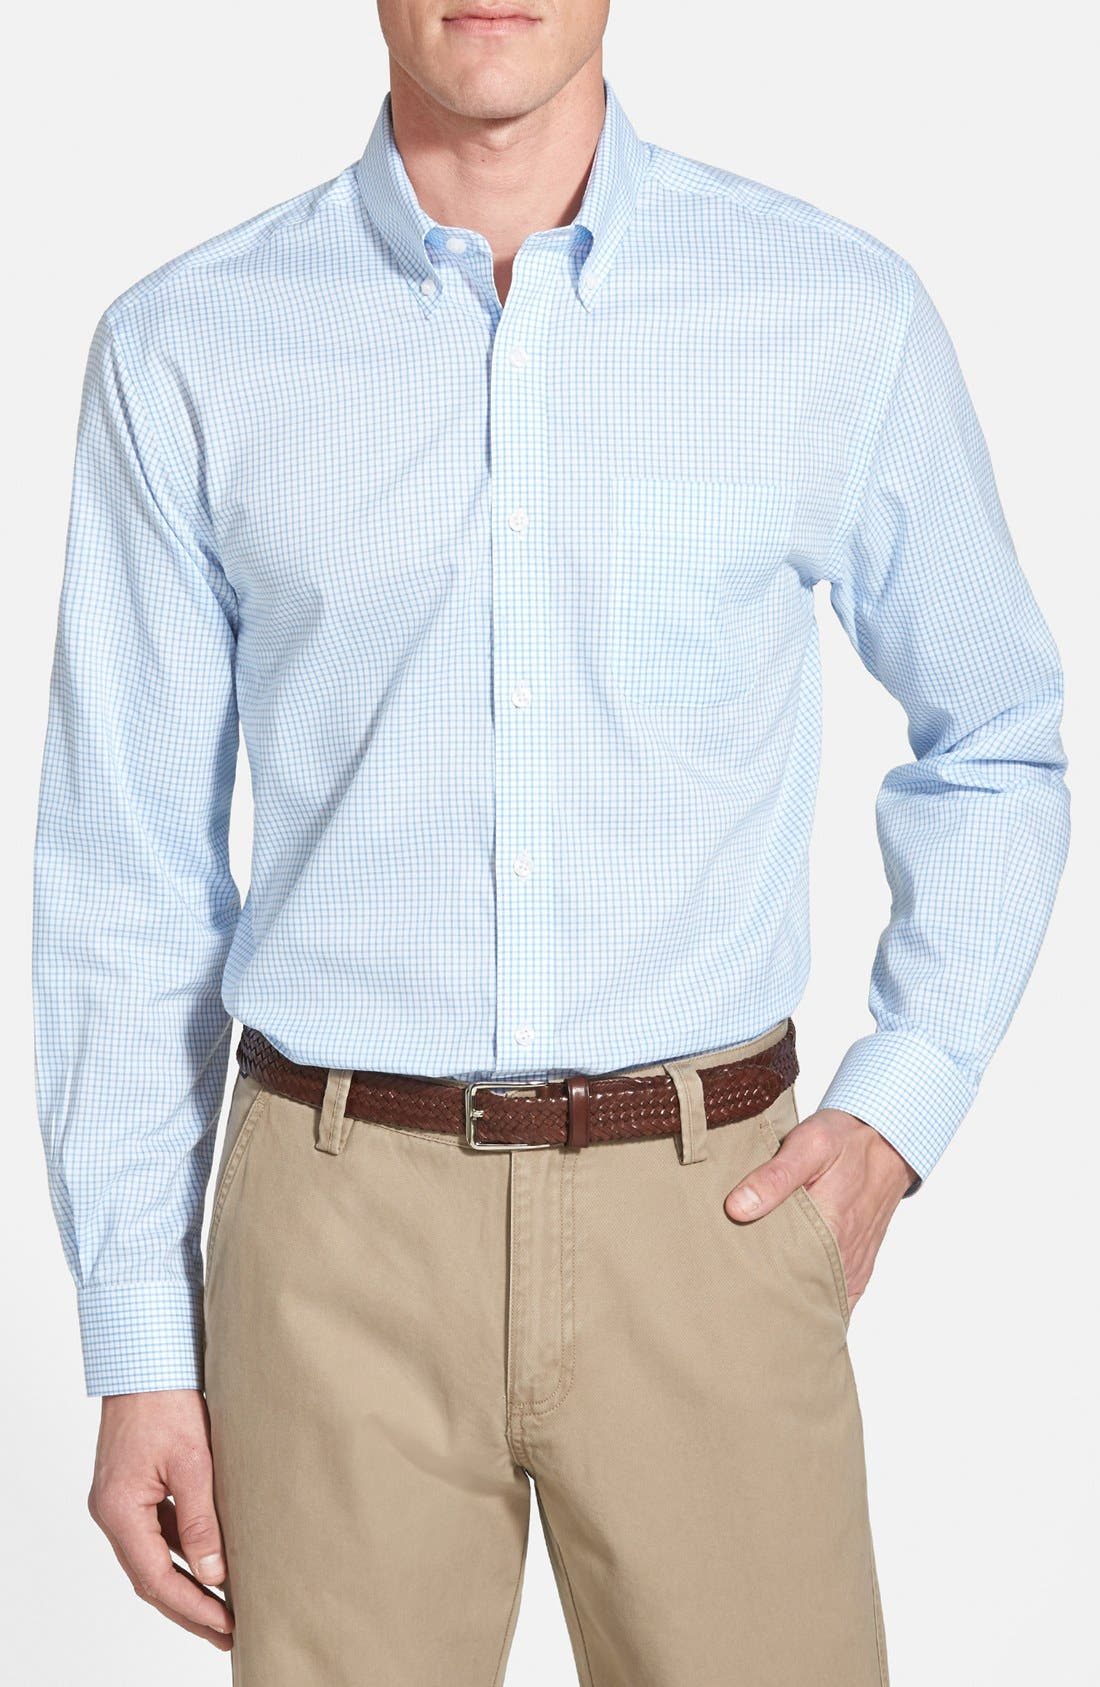 Main Image - Cutter & Buck Epic Easy Care Classic Fit Wrinkle Free Tattersall Plaid Sport Shirt